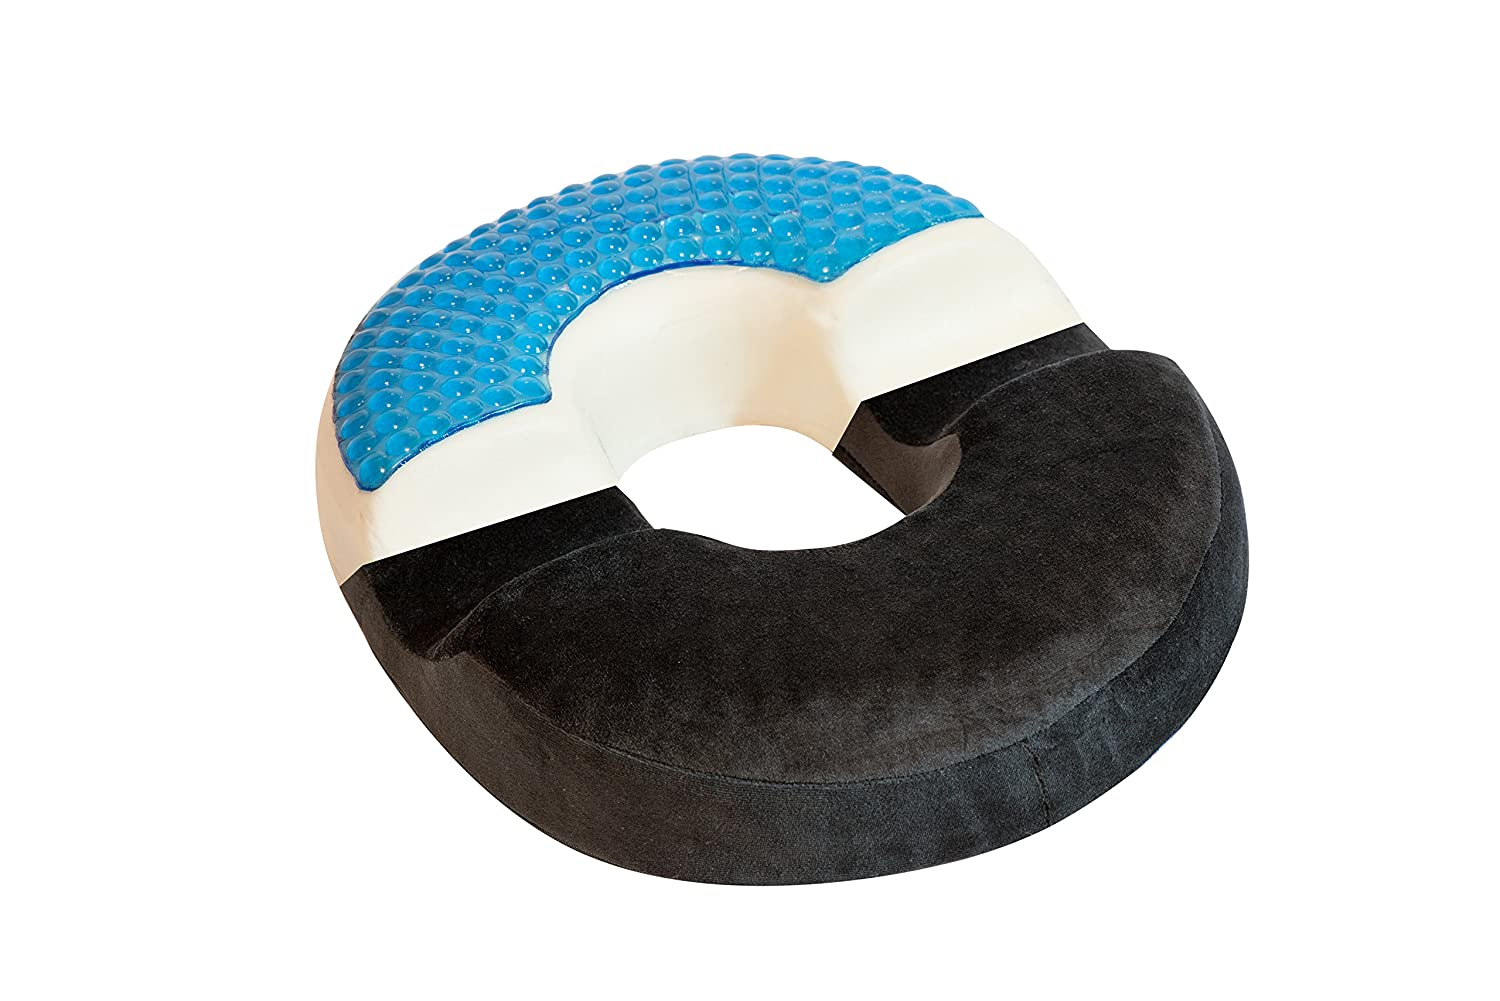 Large bonmedico Orthopedic Ring Cushion Made From Memory Foam, Donut Cushion For Relief Of Haemorrhoids (Piles) And Coccyx Pain, Suitable For Wheelchair, Car Seat, Home Or Office, Black bonstato GmbH